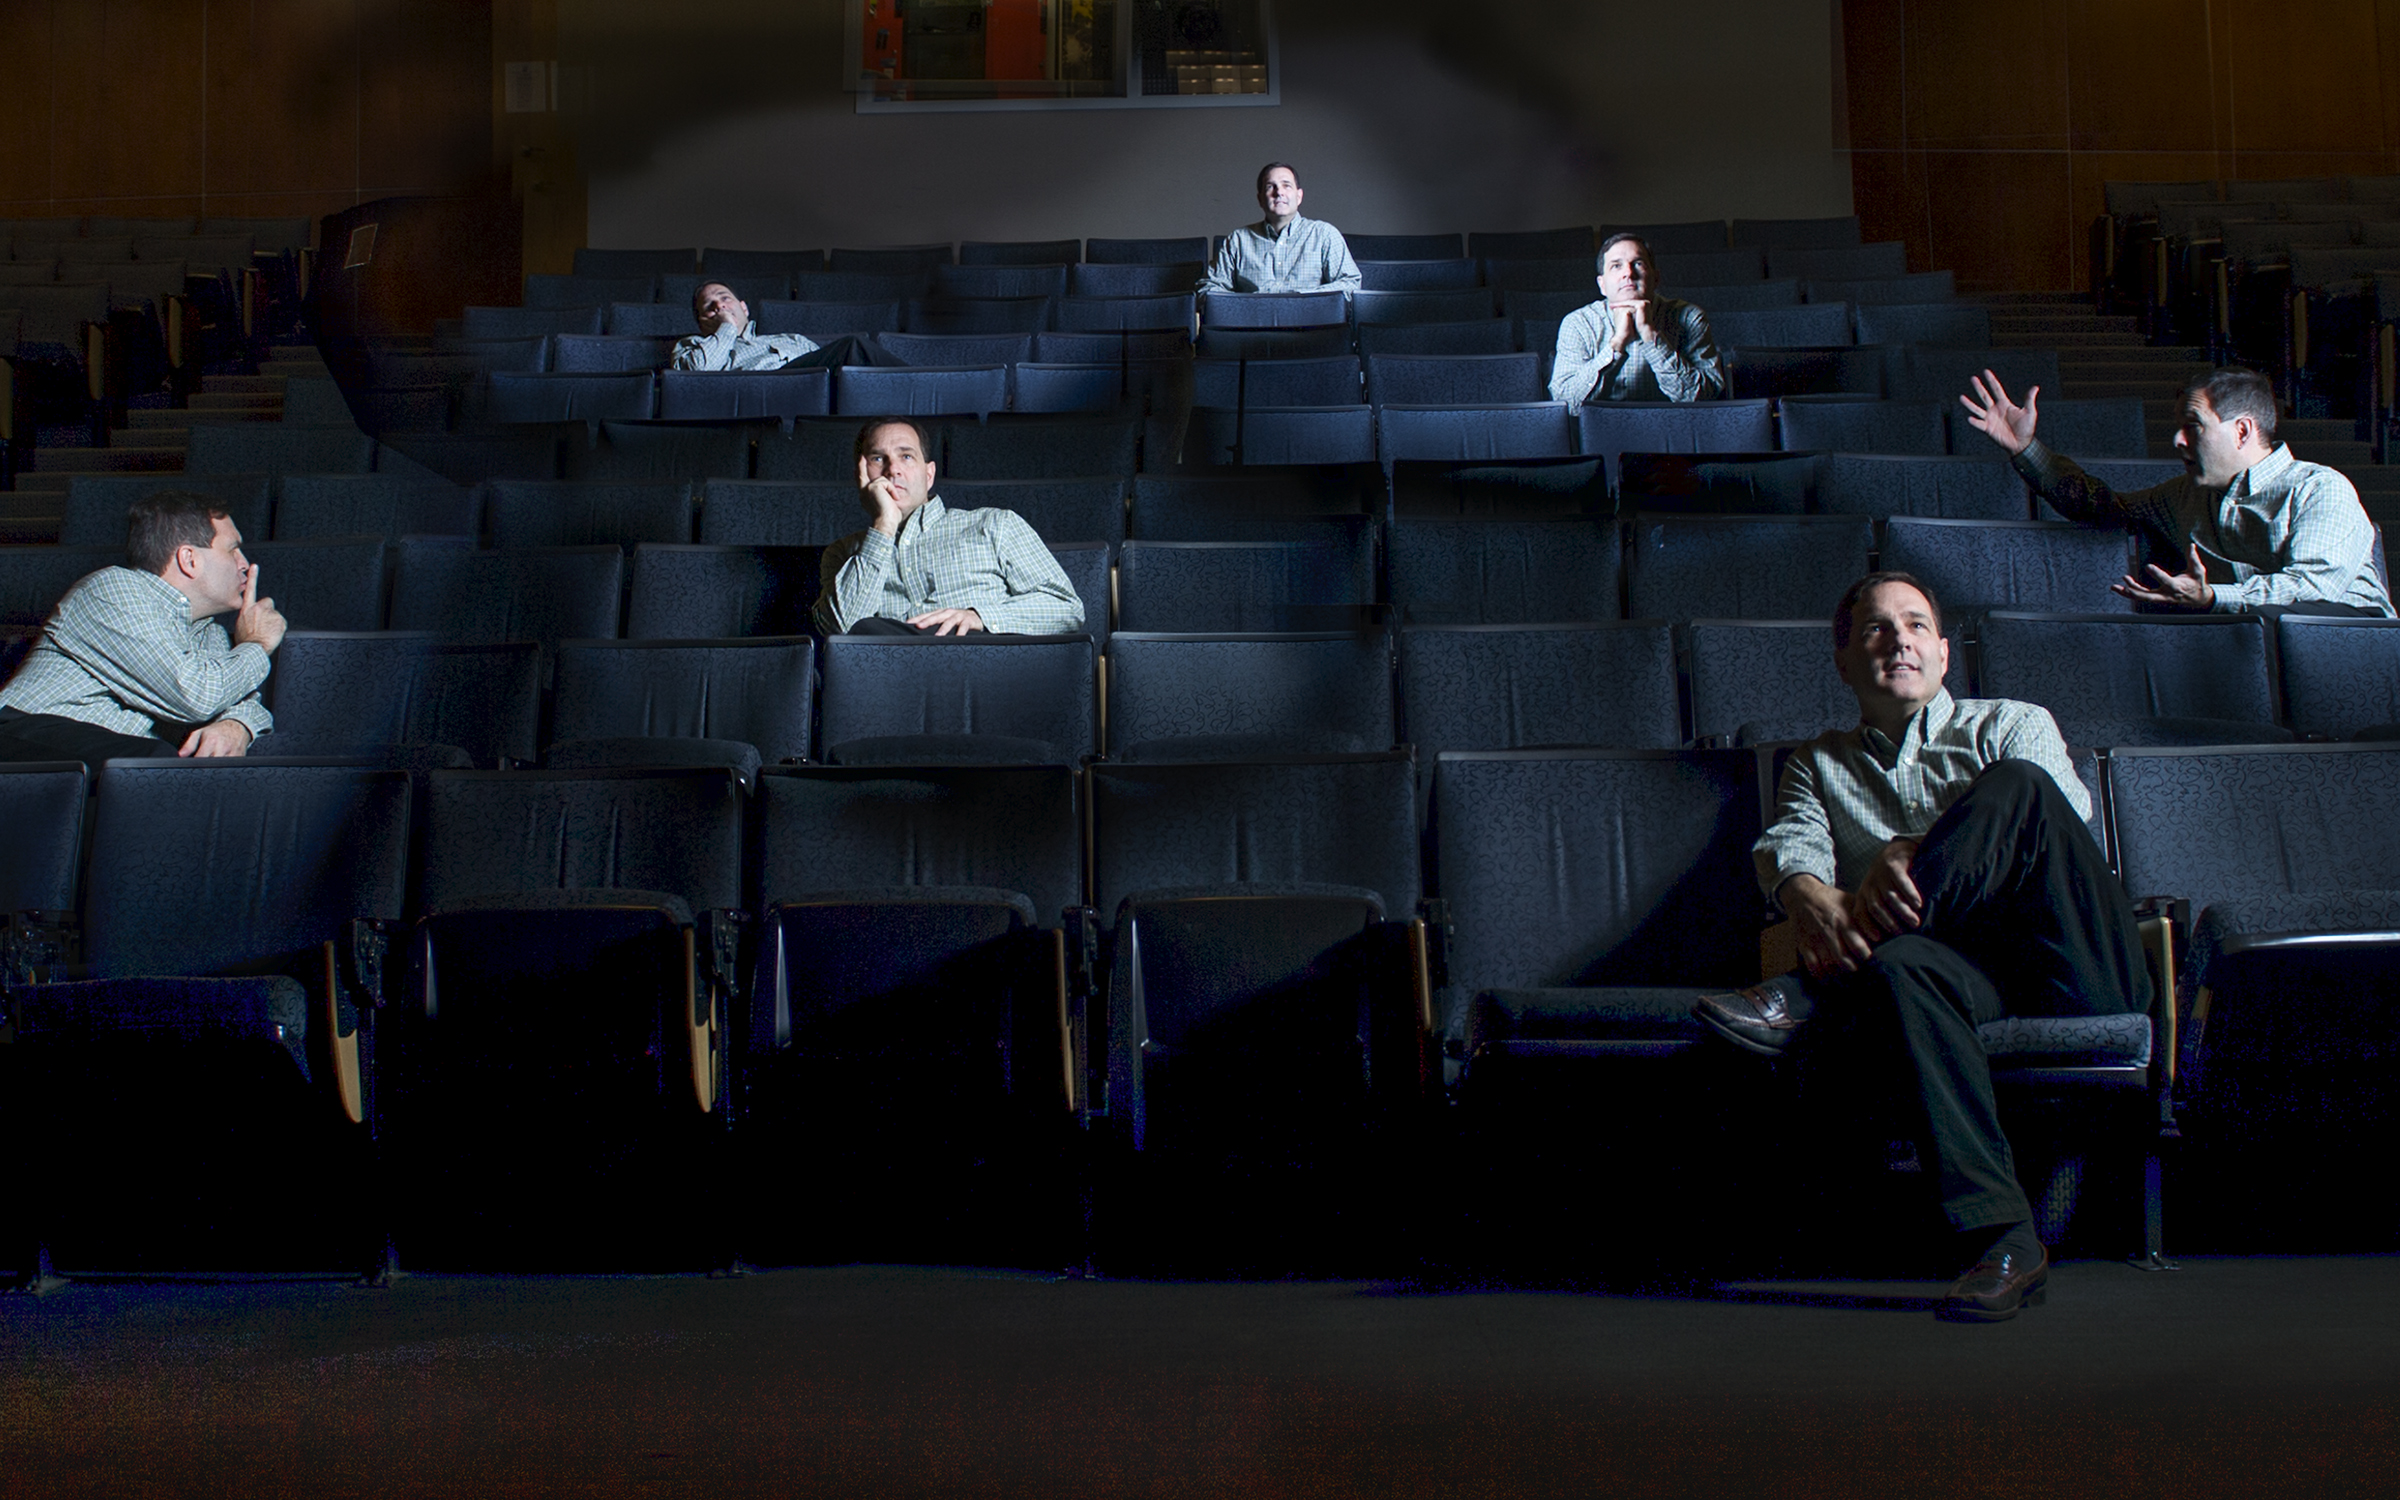 Composite picture of man in different poses in theater seats